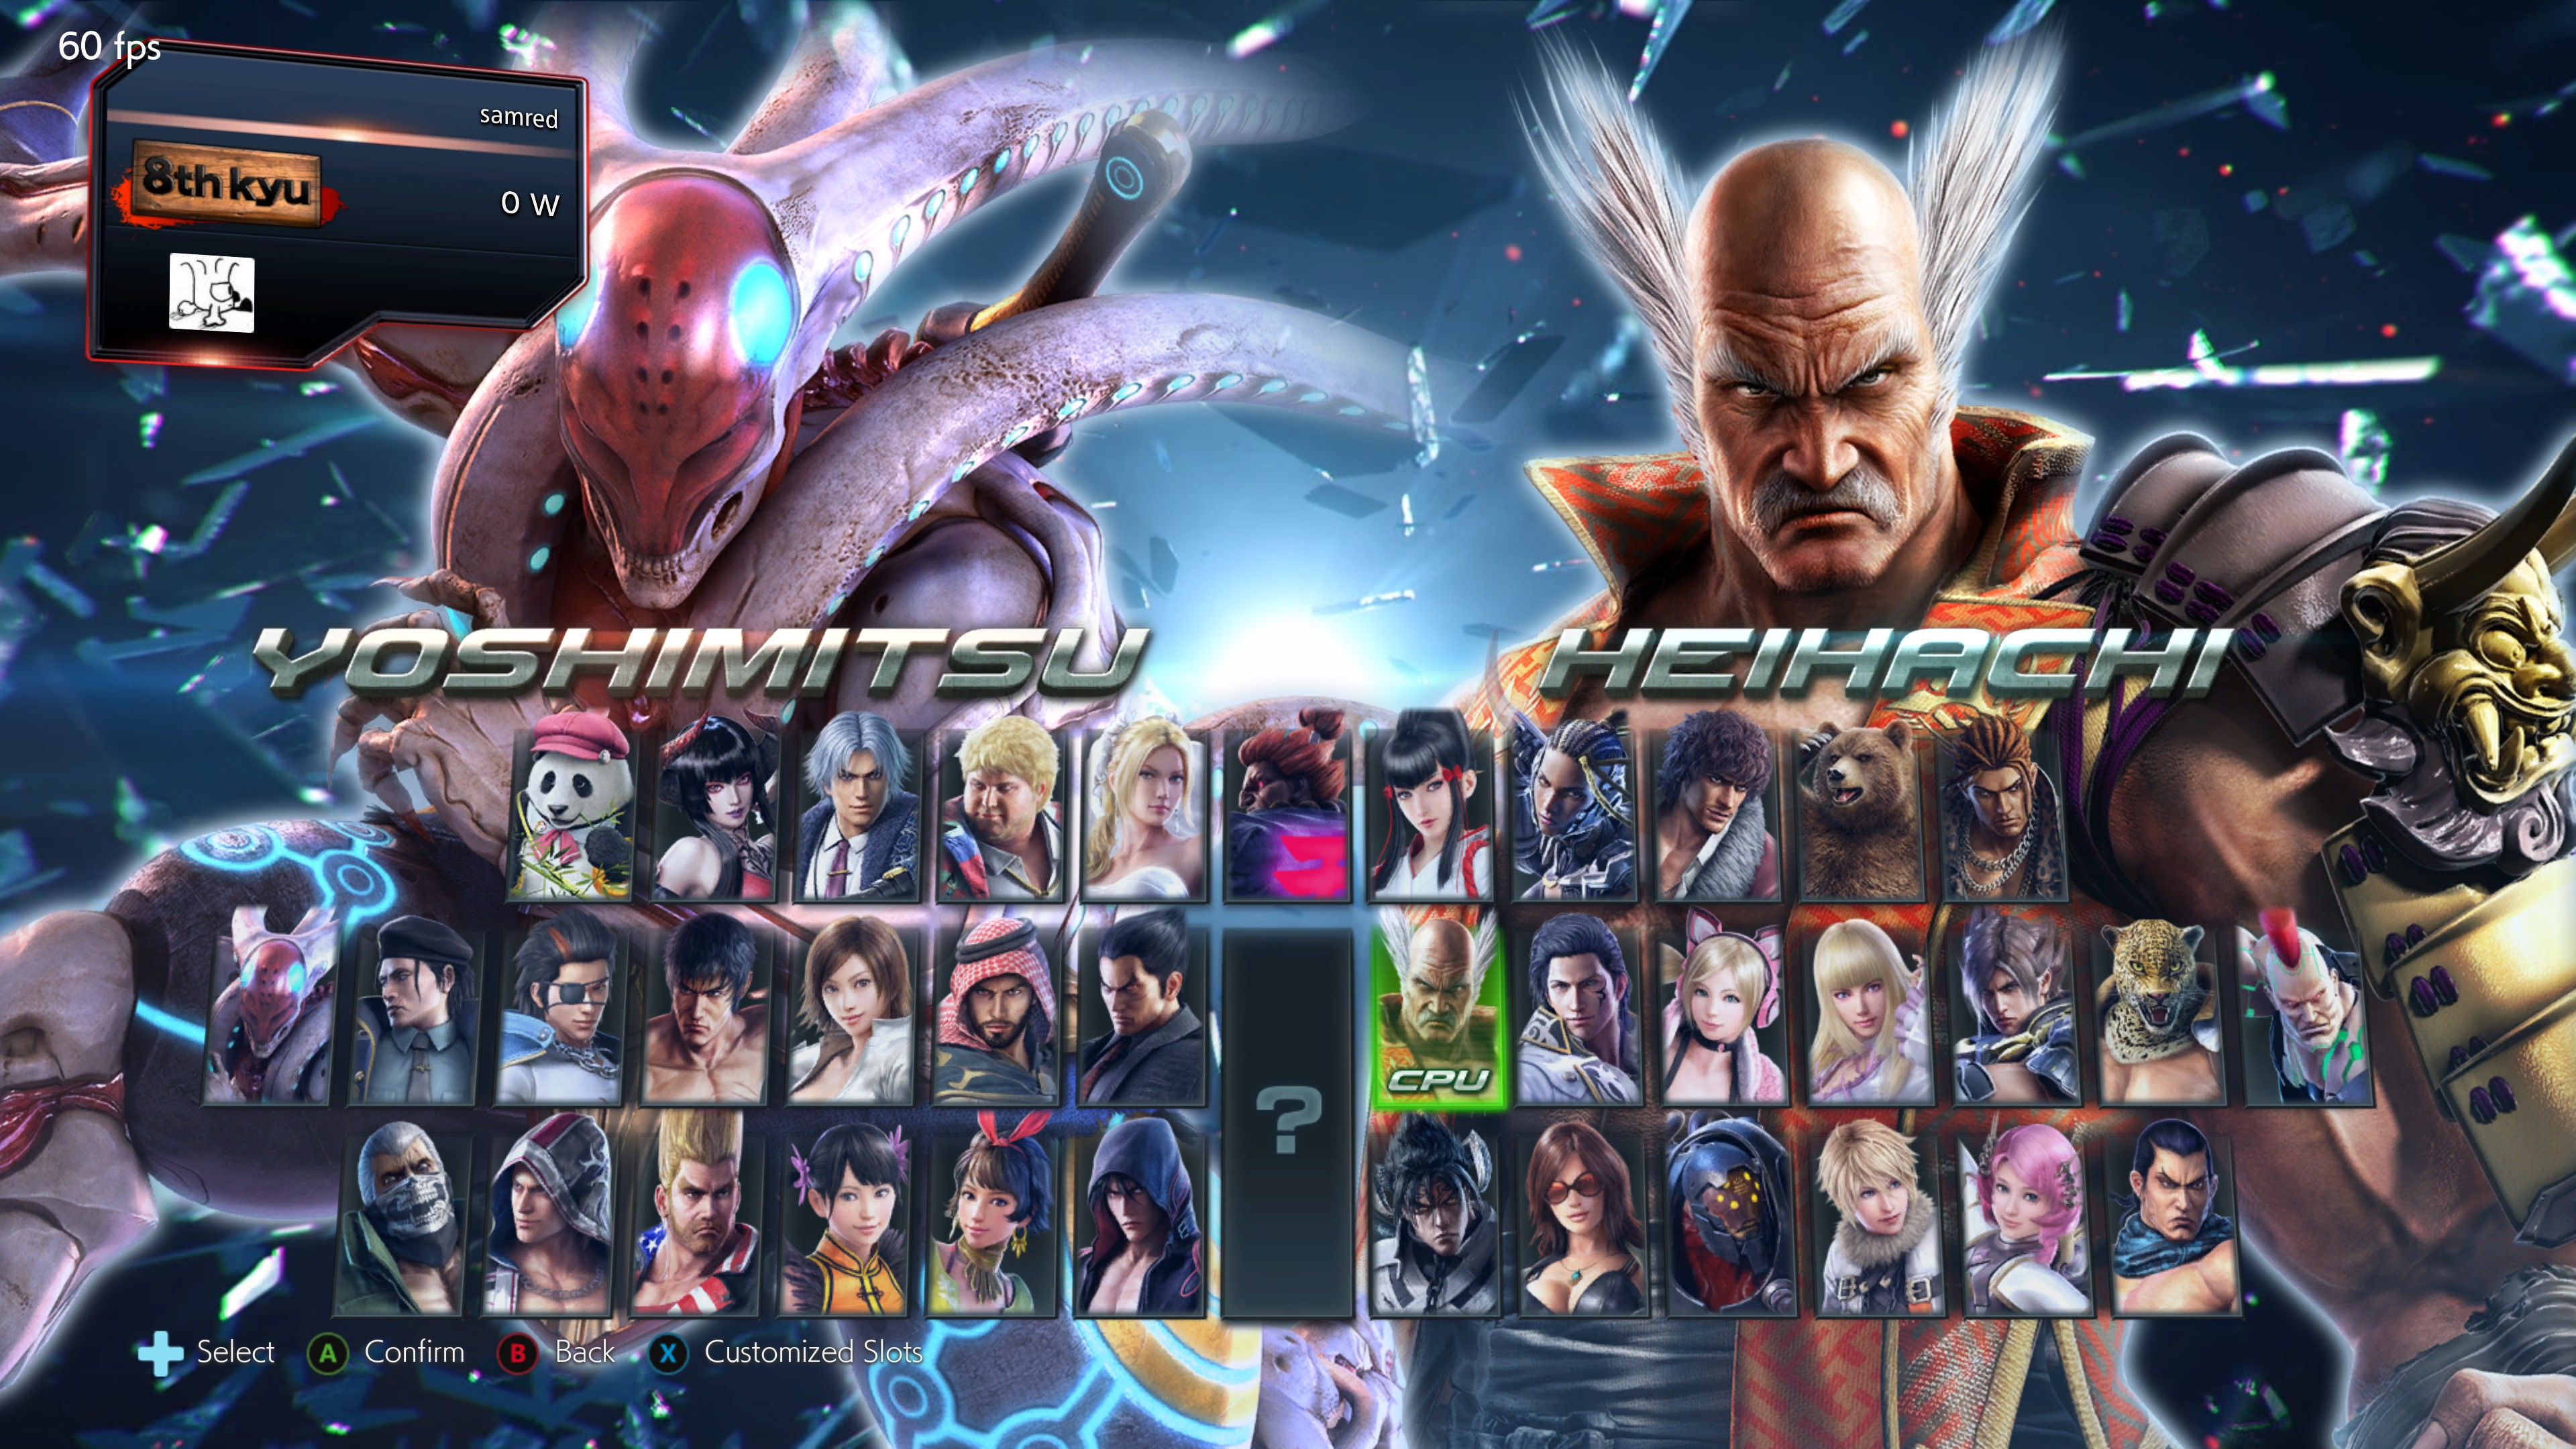 tekken 7 review stellar pc port for both 4k rigs and intel hd